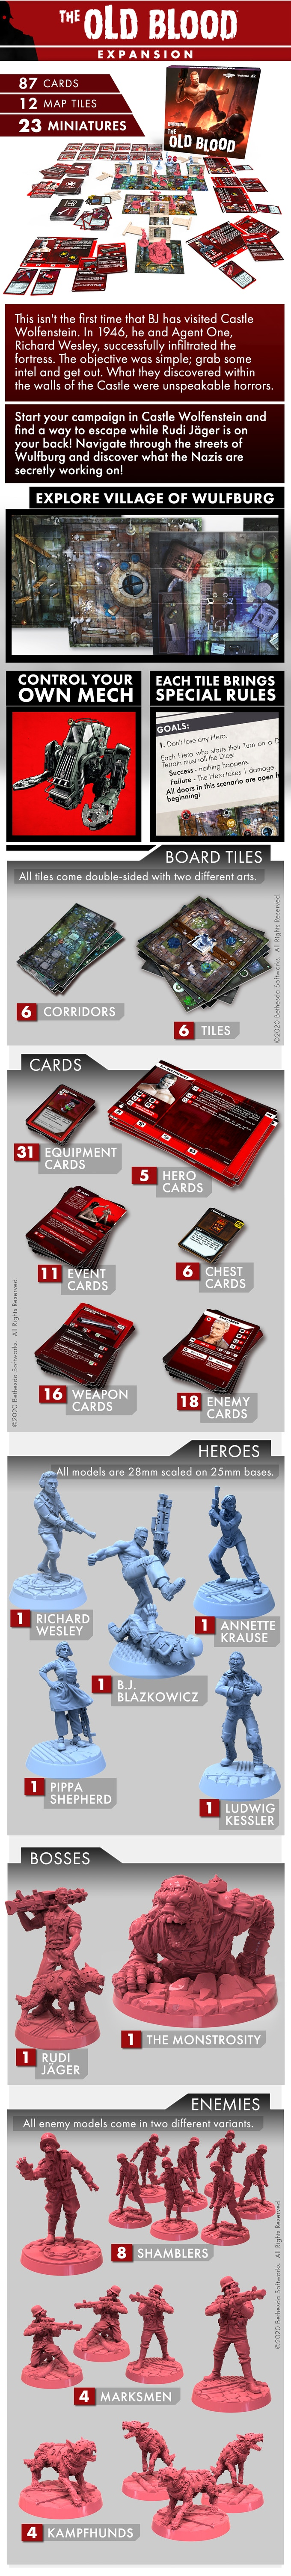 The Old Blood Expansion Contents - Archon Studio